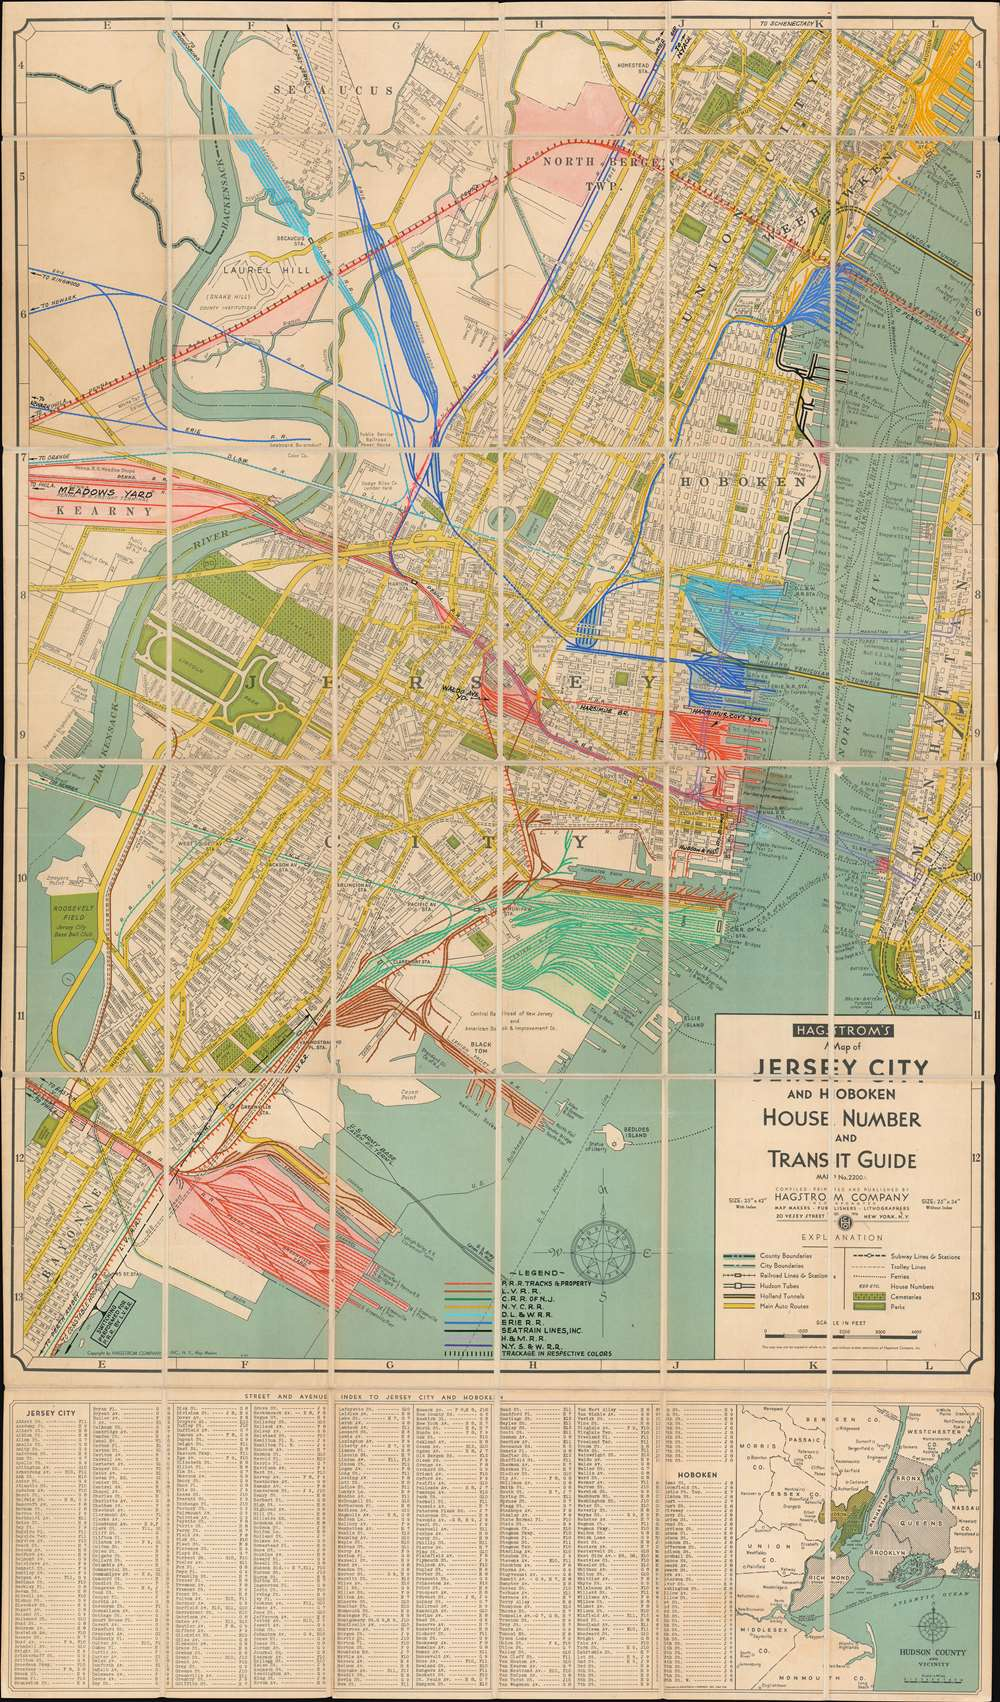 Hagstrom's Map of Jersey City and Hoboken House Number and Transit Guide Map No. 2200A - Main View